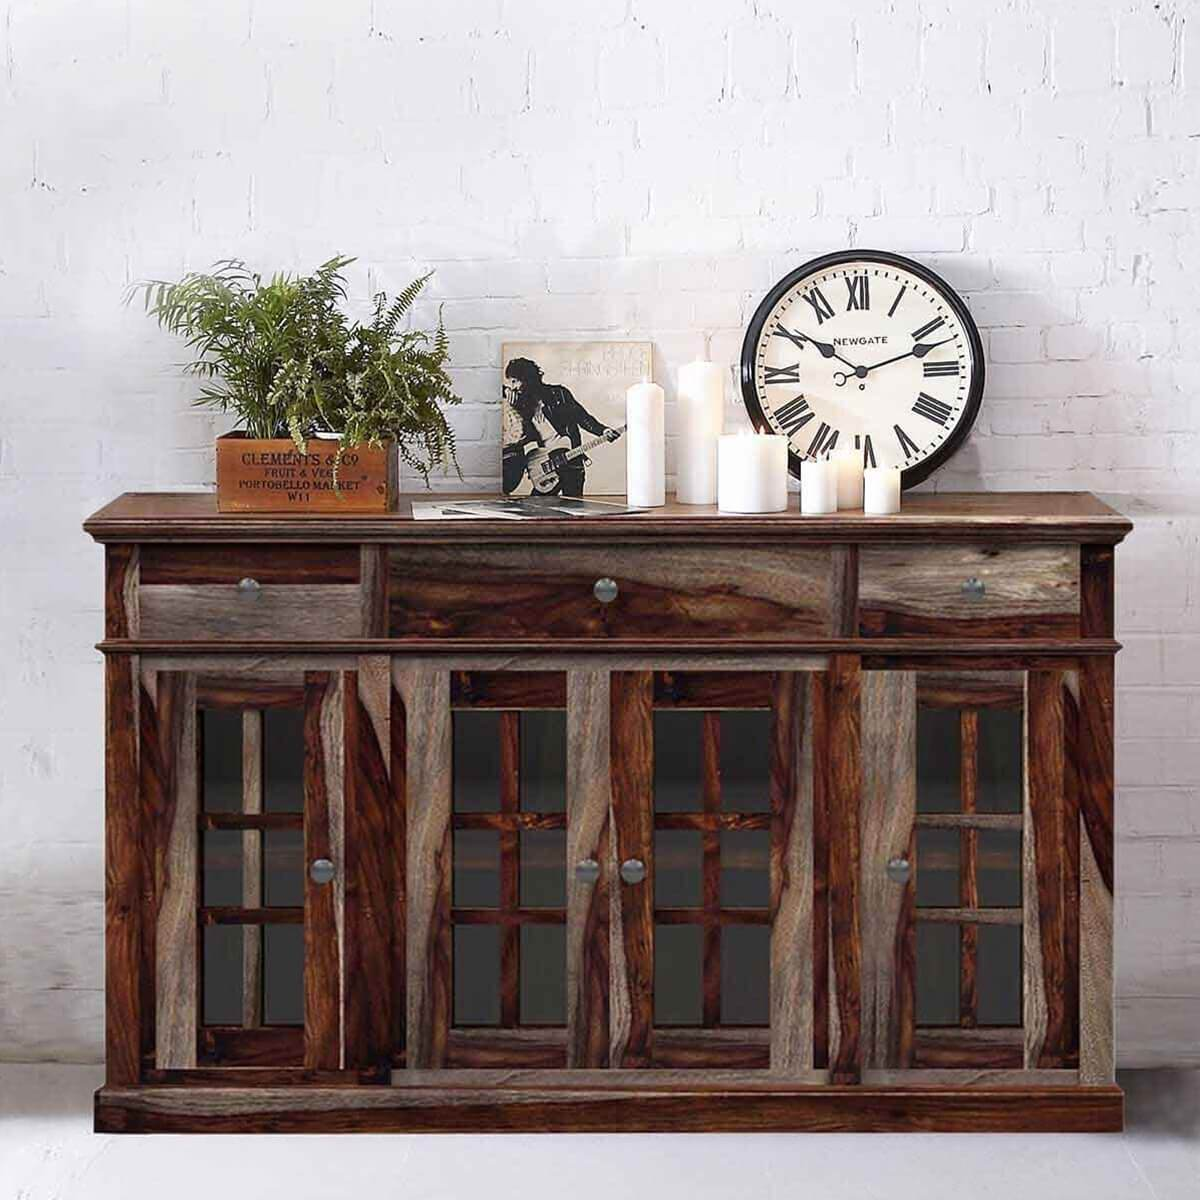 Dallas ranch rustic solid wood contemporary sideboard